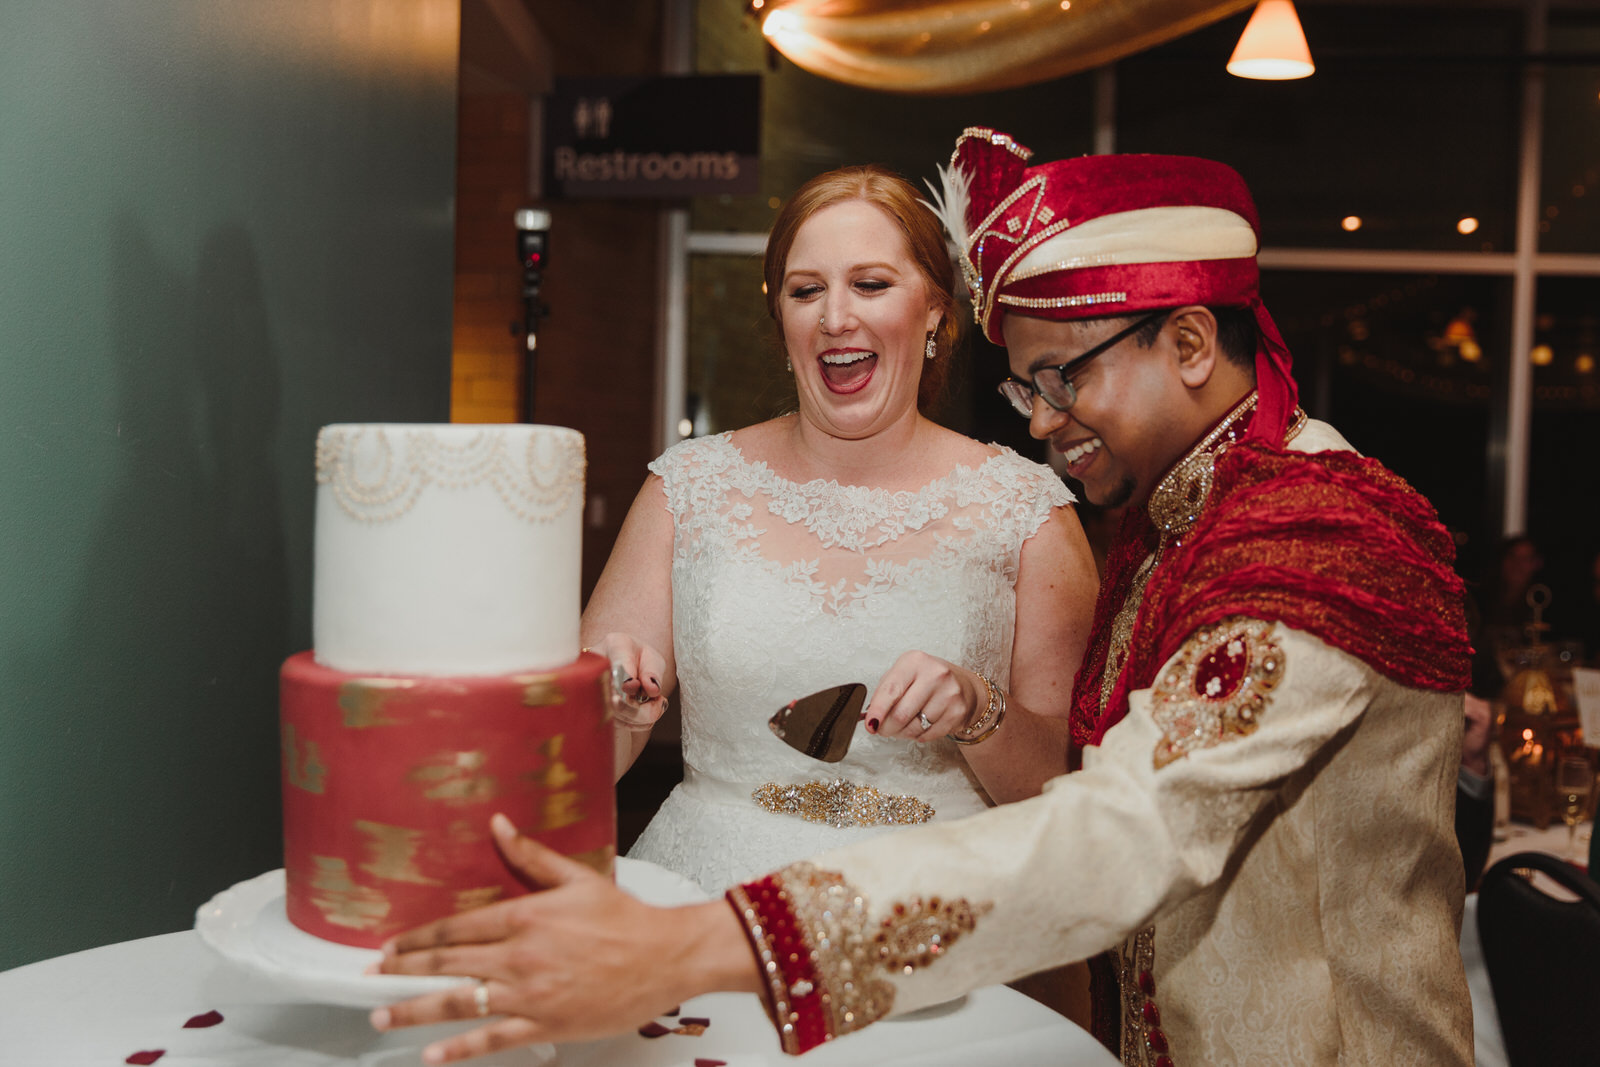 bride and groom cutting their wedding cake together